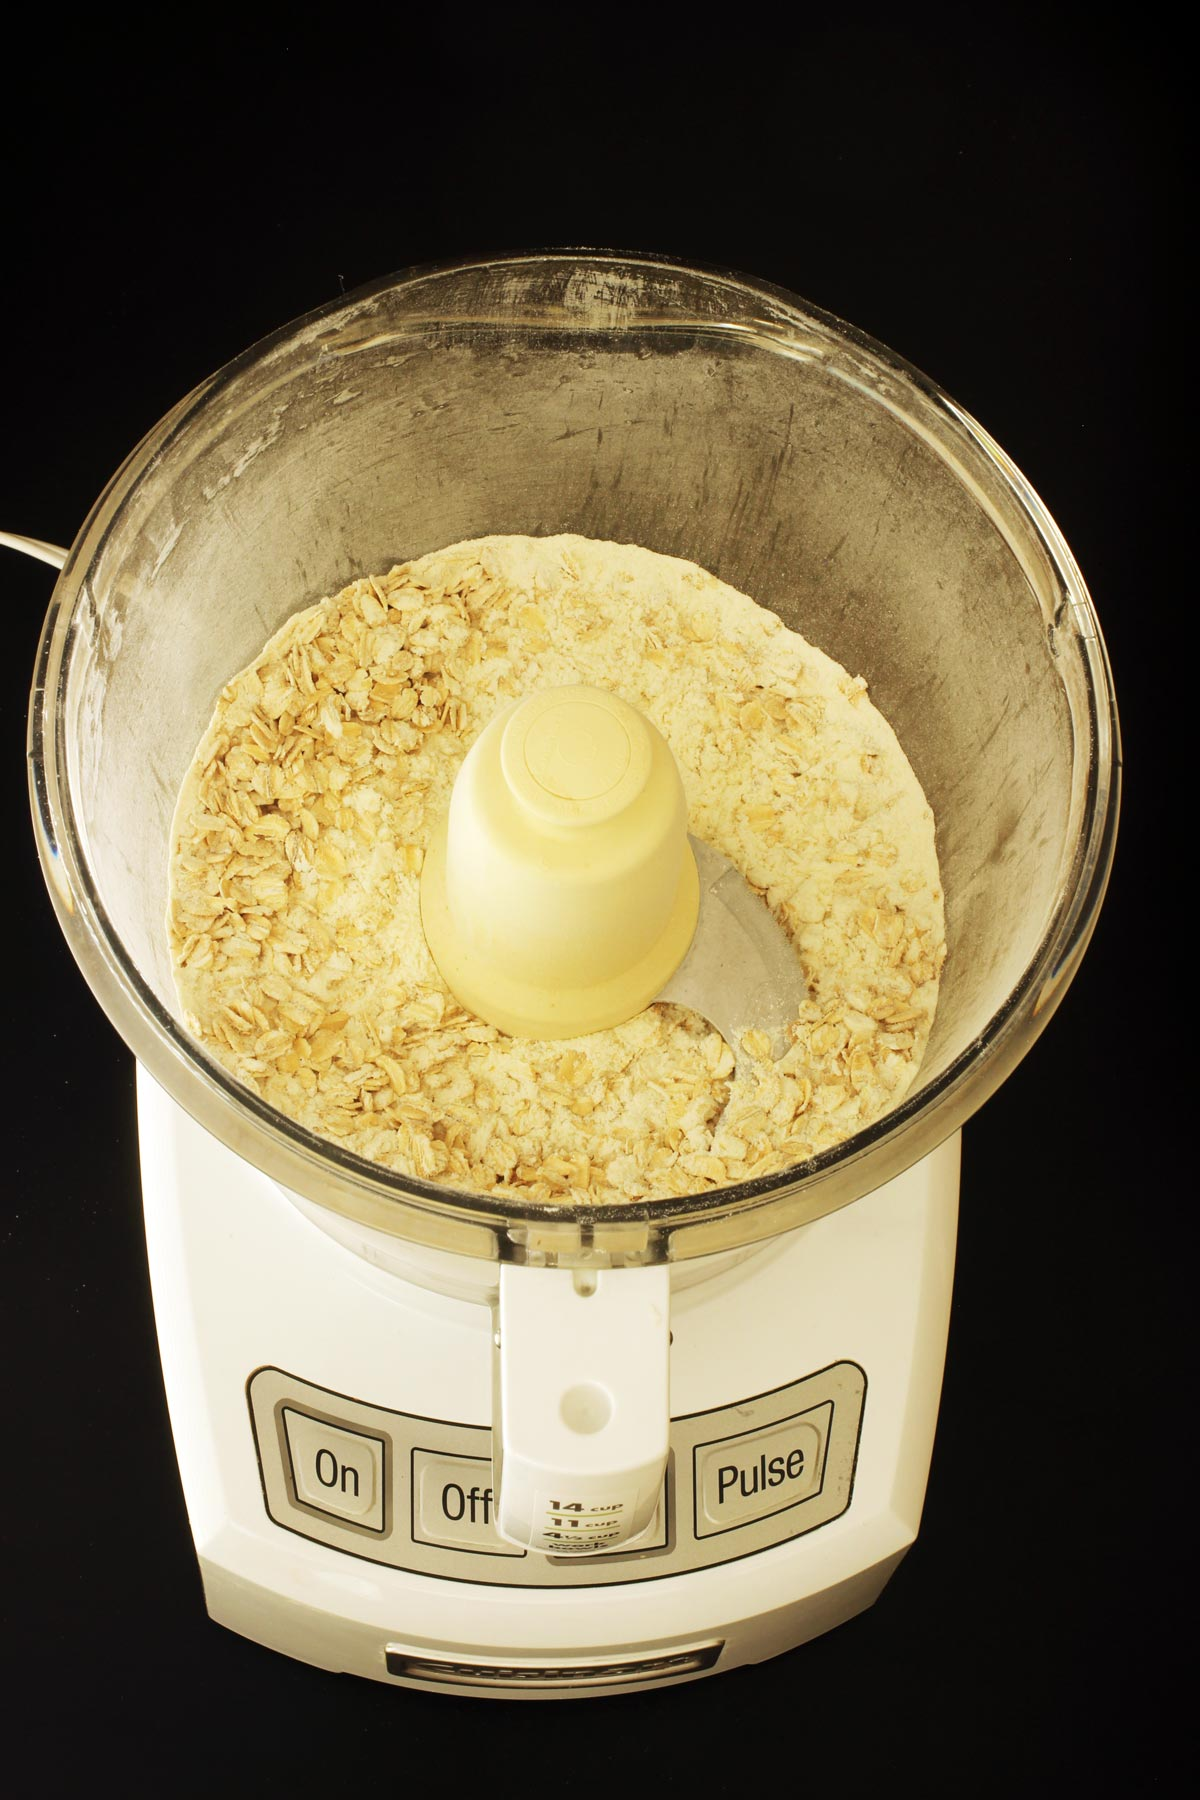 lightly pulsed dry ingredients in the food processor bowl.